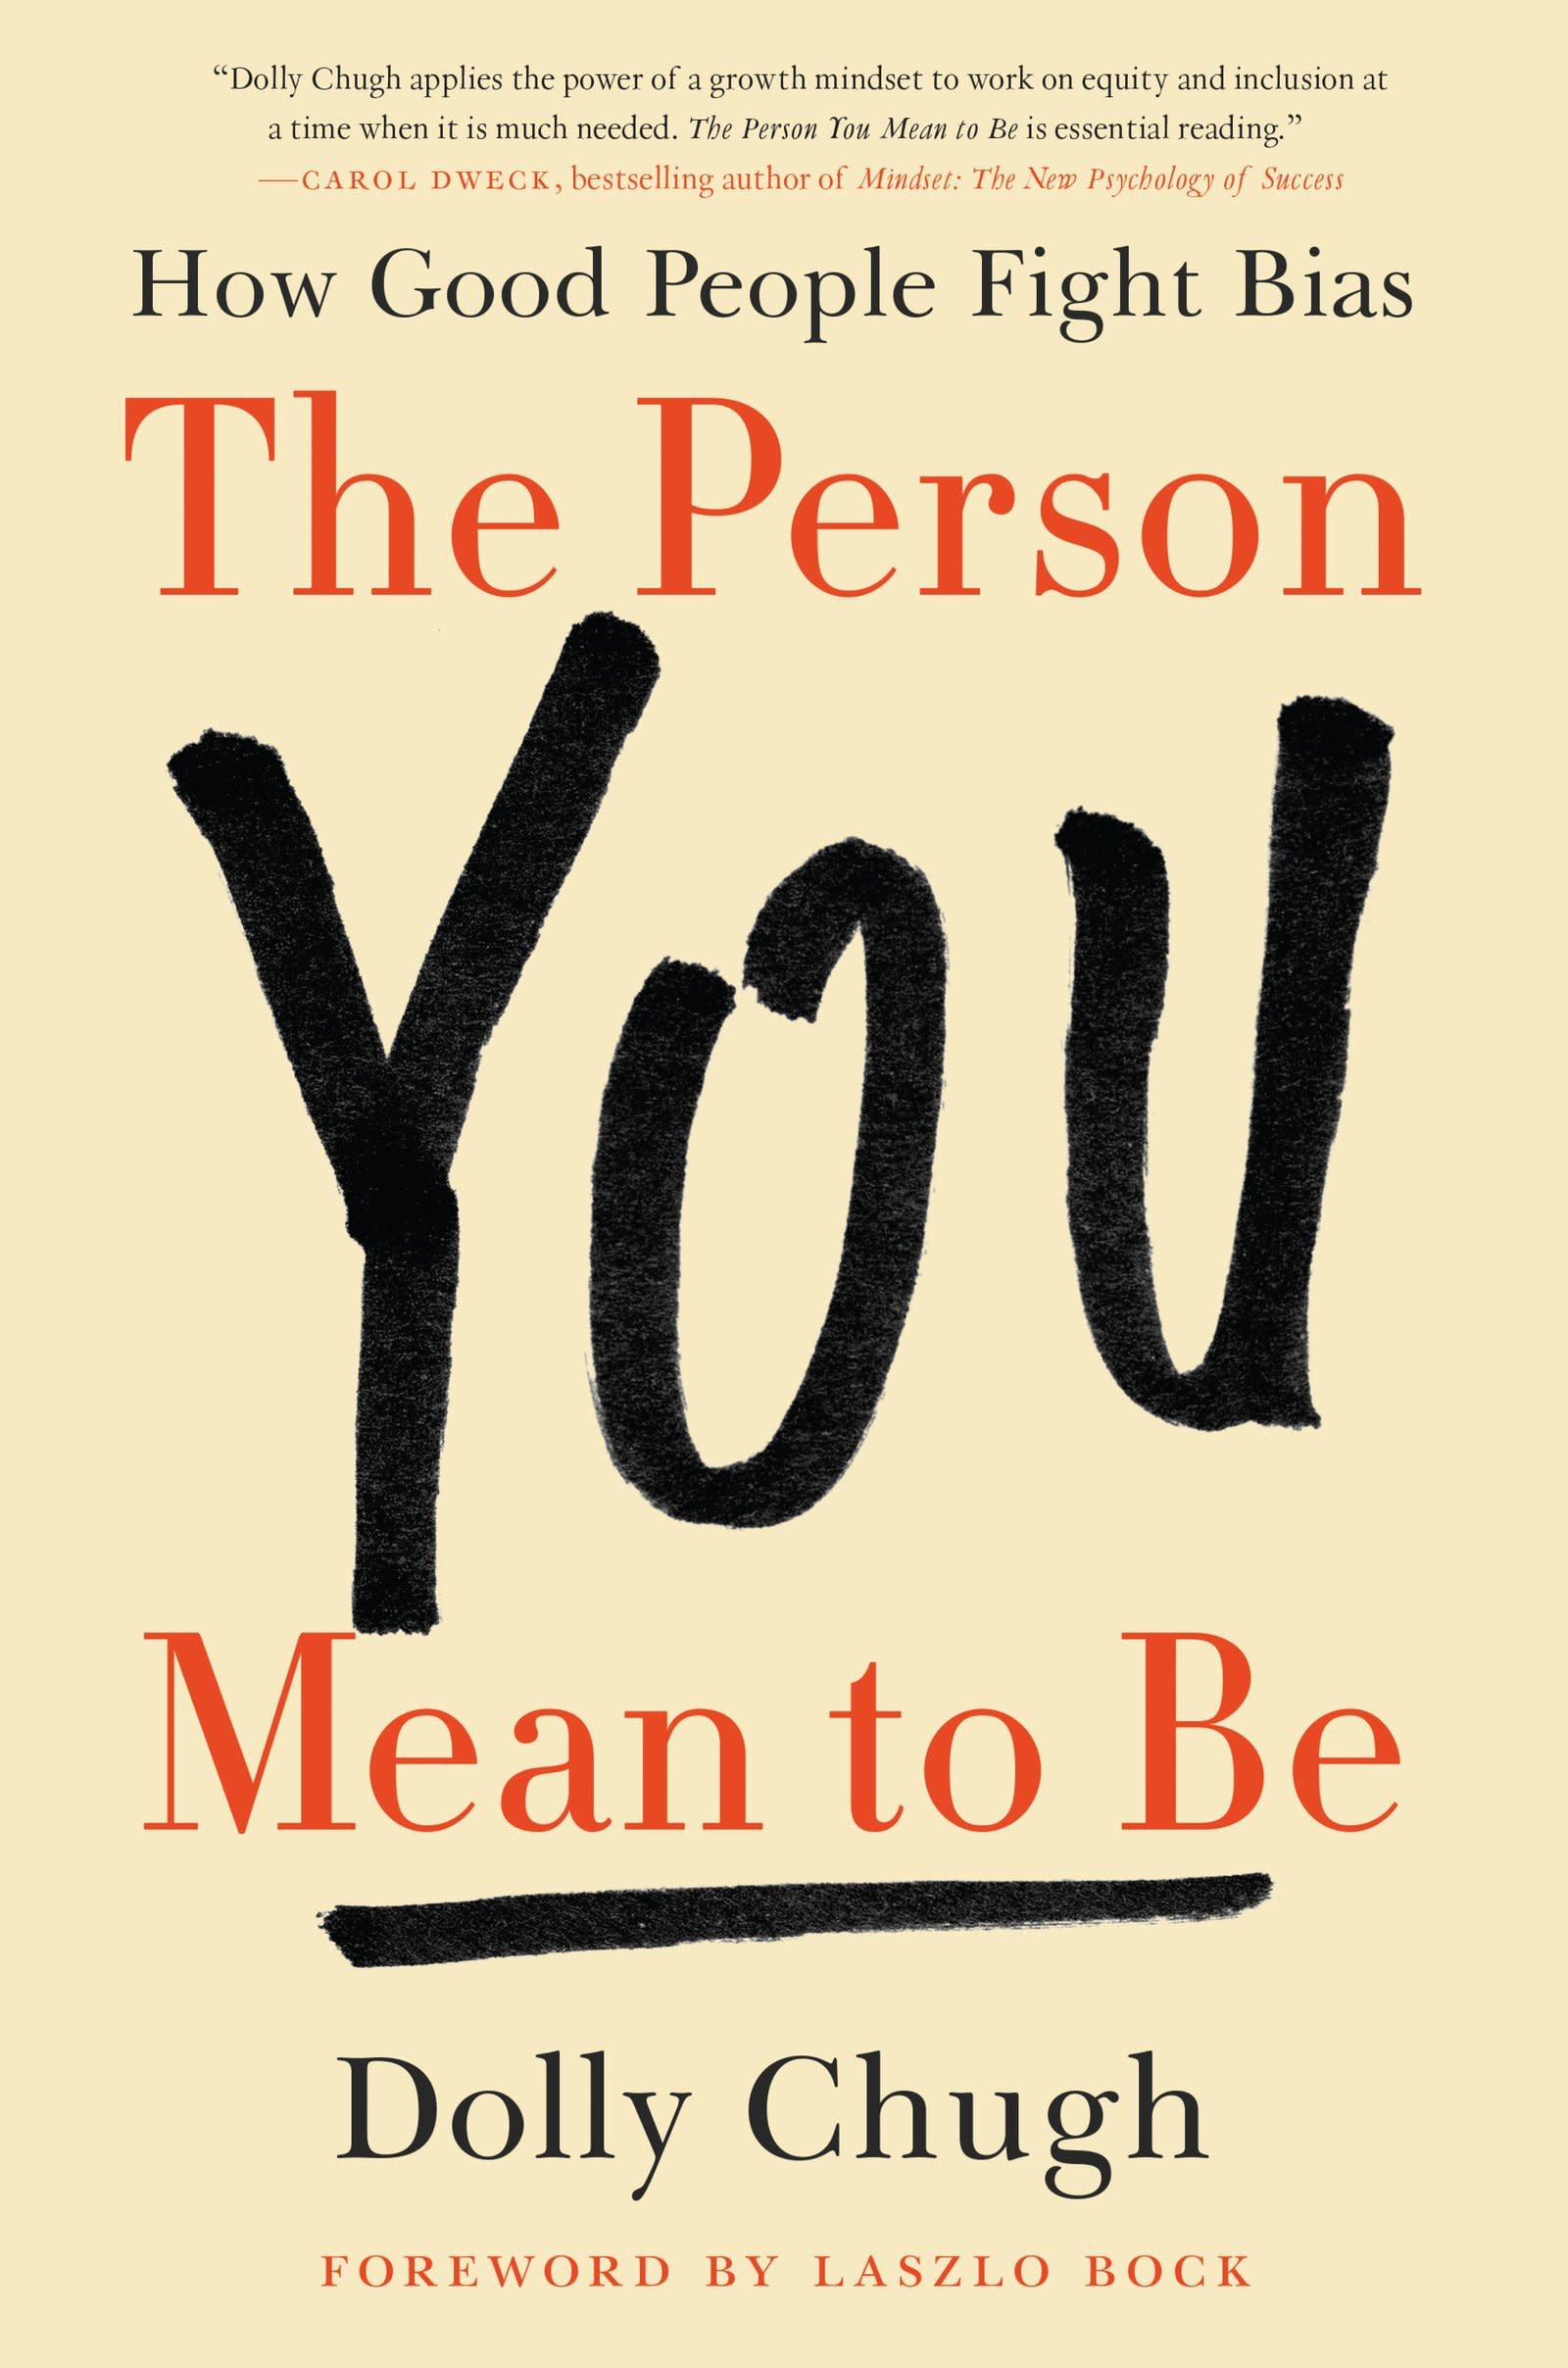 One time use: The person you mean to be book cover